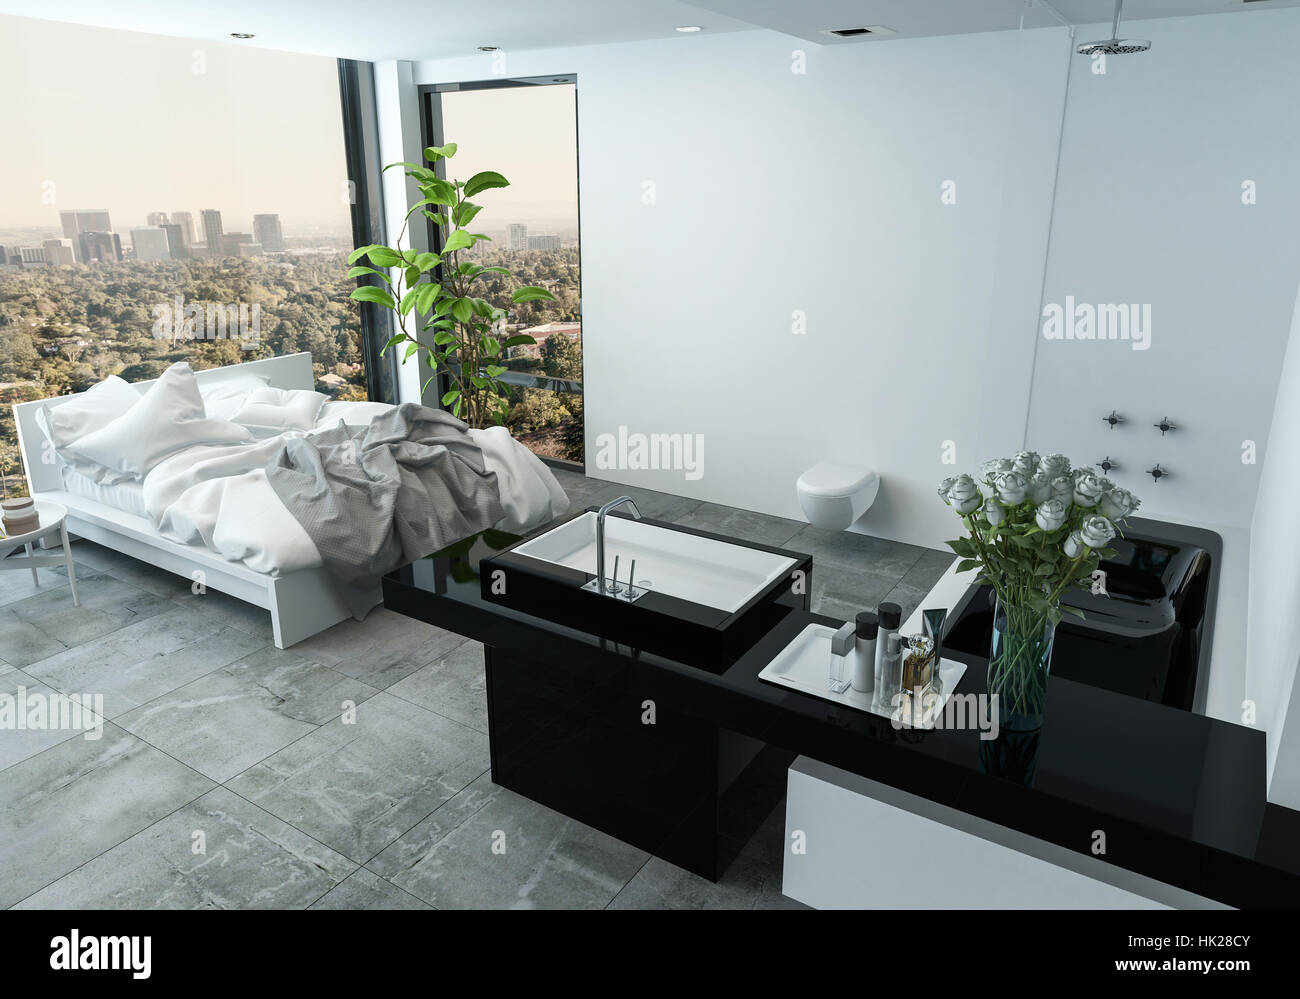 messy apartment room. Messy bed in the corner angle of large view windows overlooking city  a stylish studio apartment with bathroom and houseplants 3d render